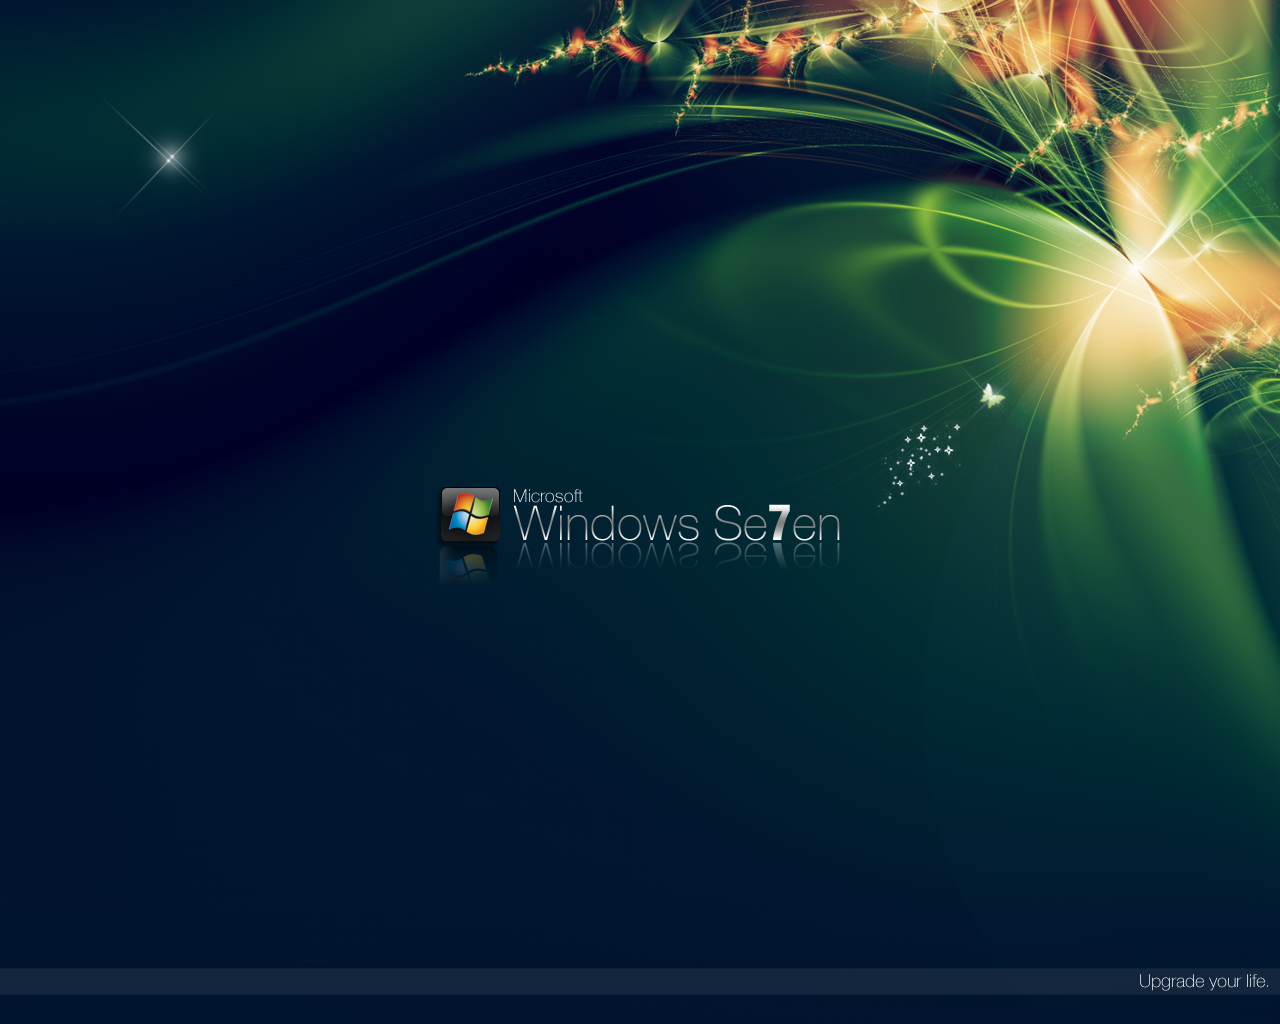 20 wallpapers selecionados para windows 7